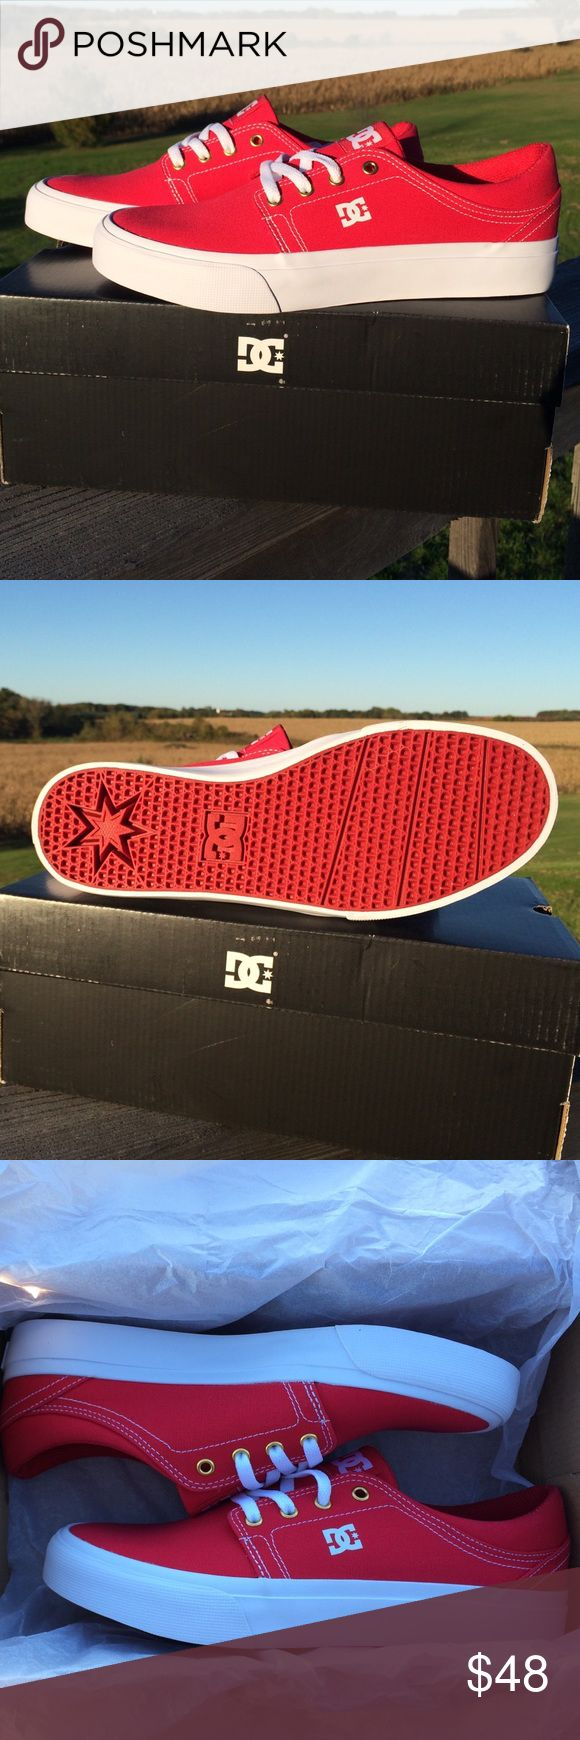 DC Skate Shoes *BRAND NEW* Size 8 men's red DC skate shoes. *NEVER WORN STILL IN BOX* Price is firm. DC Shoes Sneakers